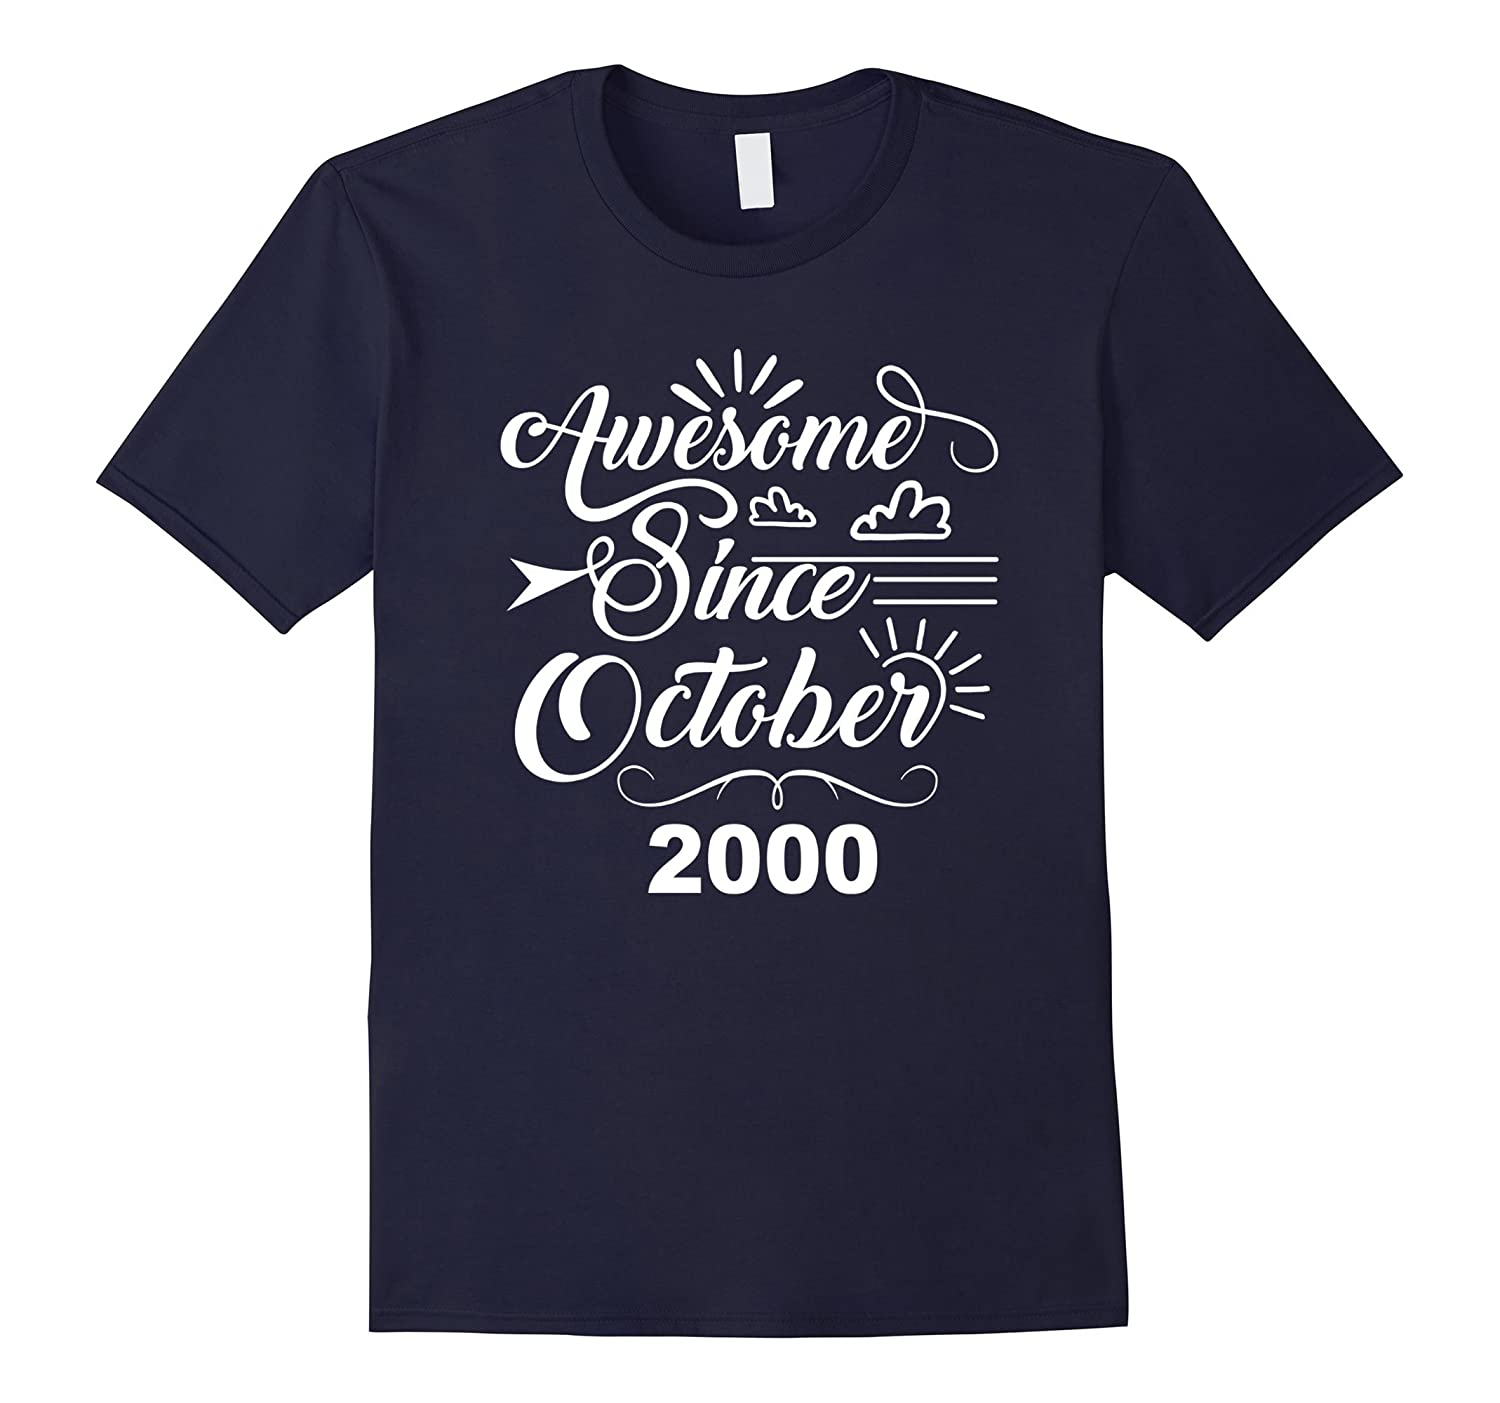 17th Birthday Gifts - Awesome Since October 2000 T-shirt-TJ